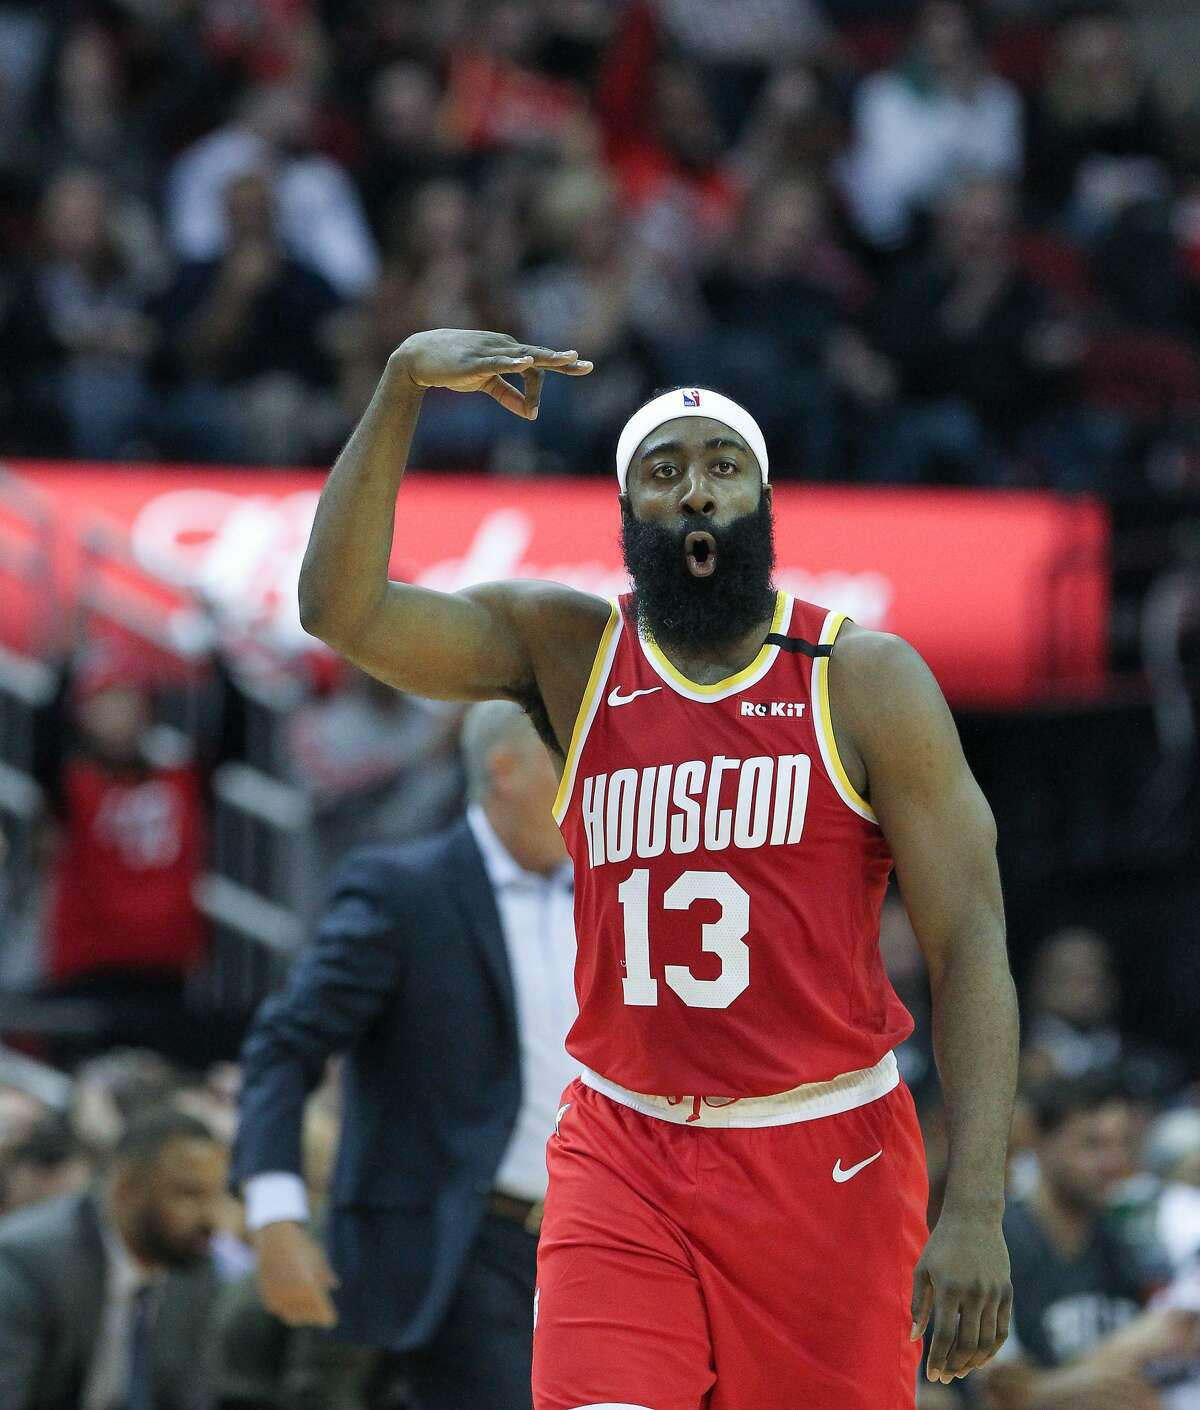 Houston Rockets guard James Harden (13) celebrates a three-pointer during the first half of an NBA basketball game at Toyota Center on Friday, Jan. 3, 2020, in Houston.